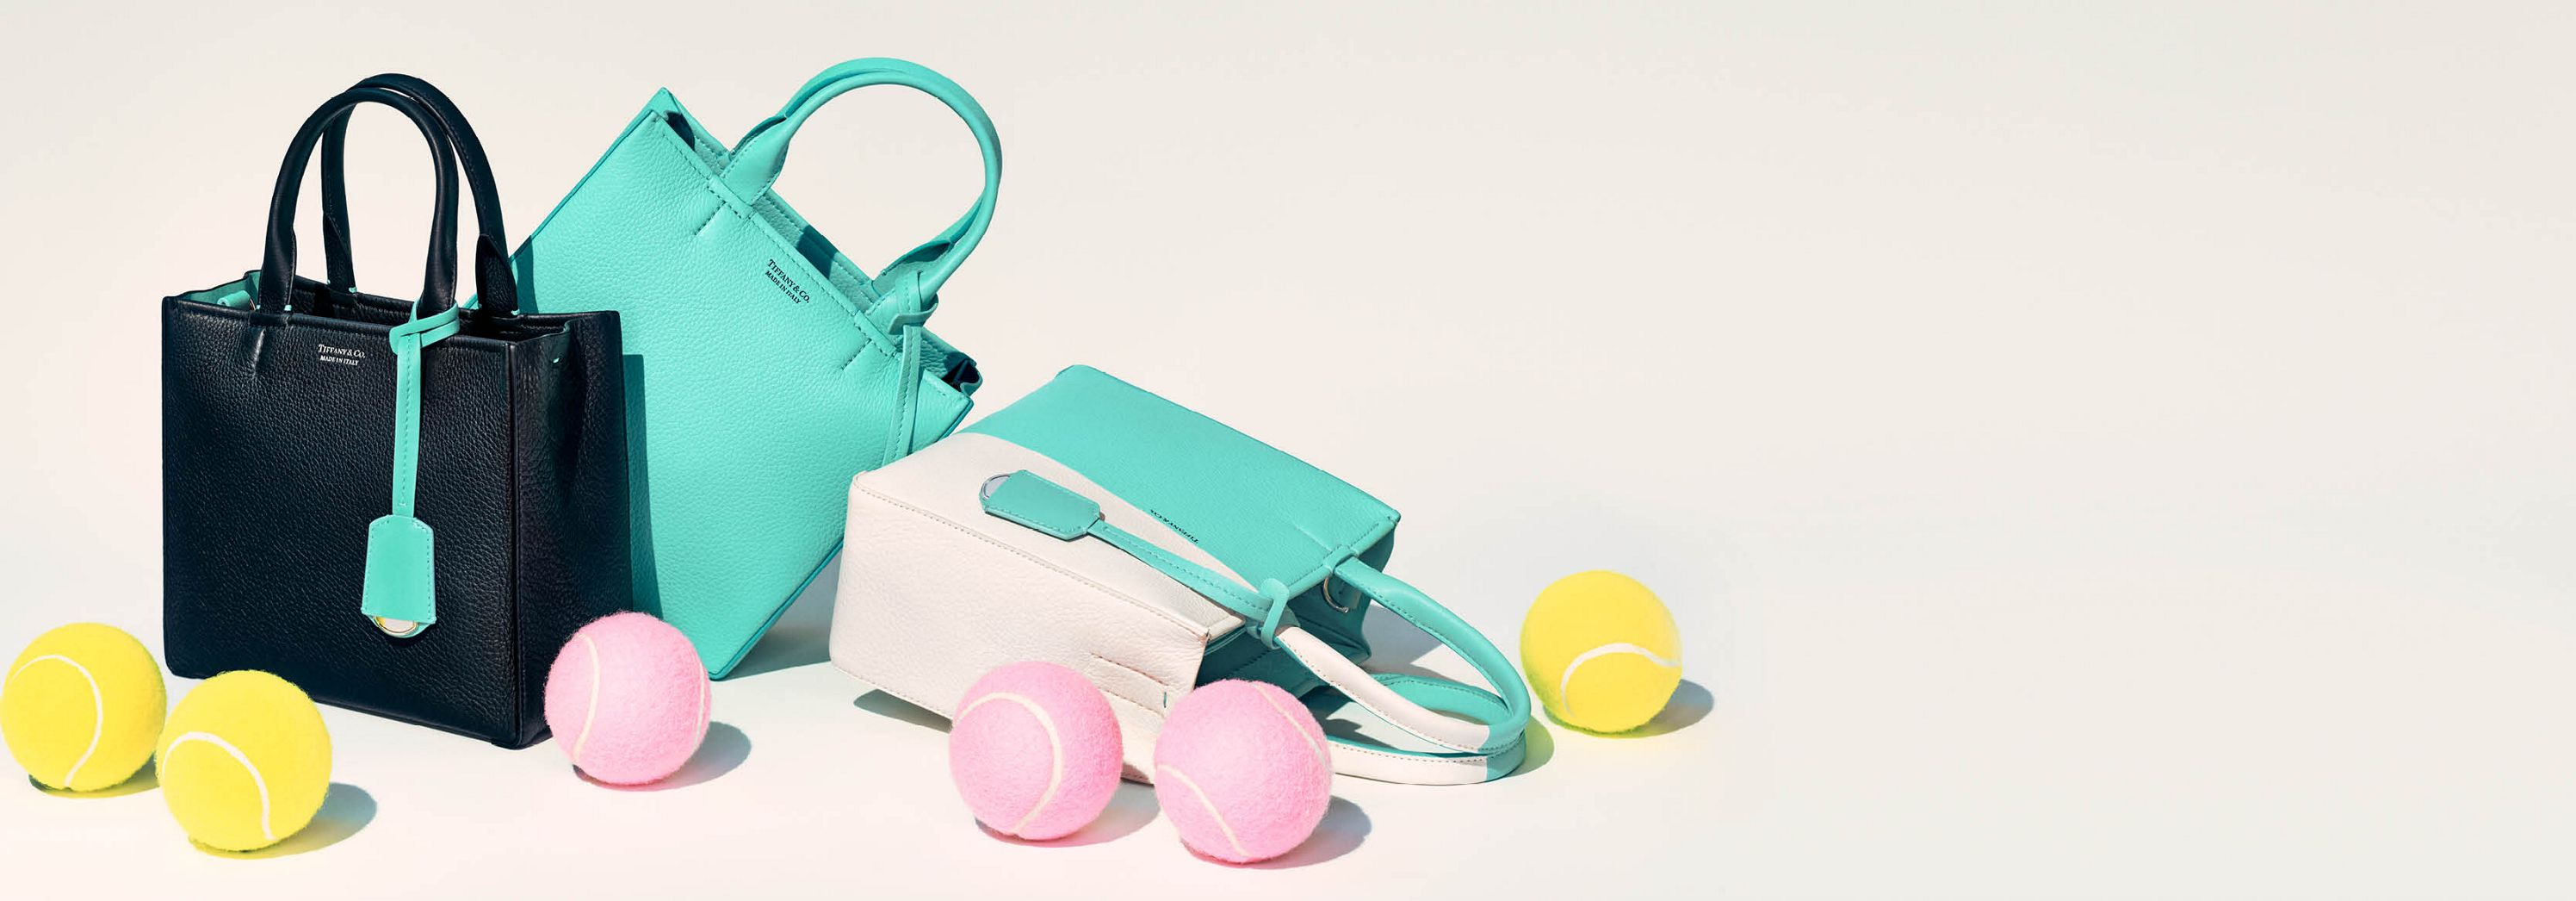 Shop Tiffany & Co. Luxury Accessories, Bags & Totes